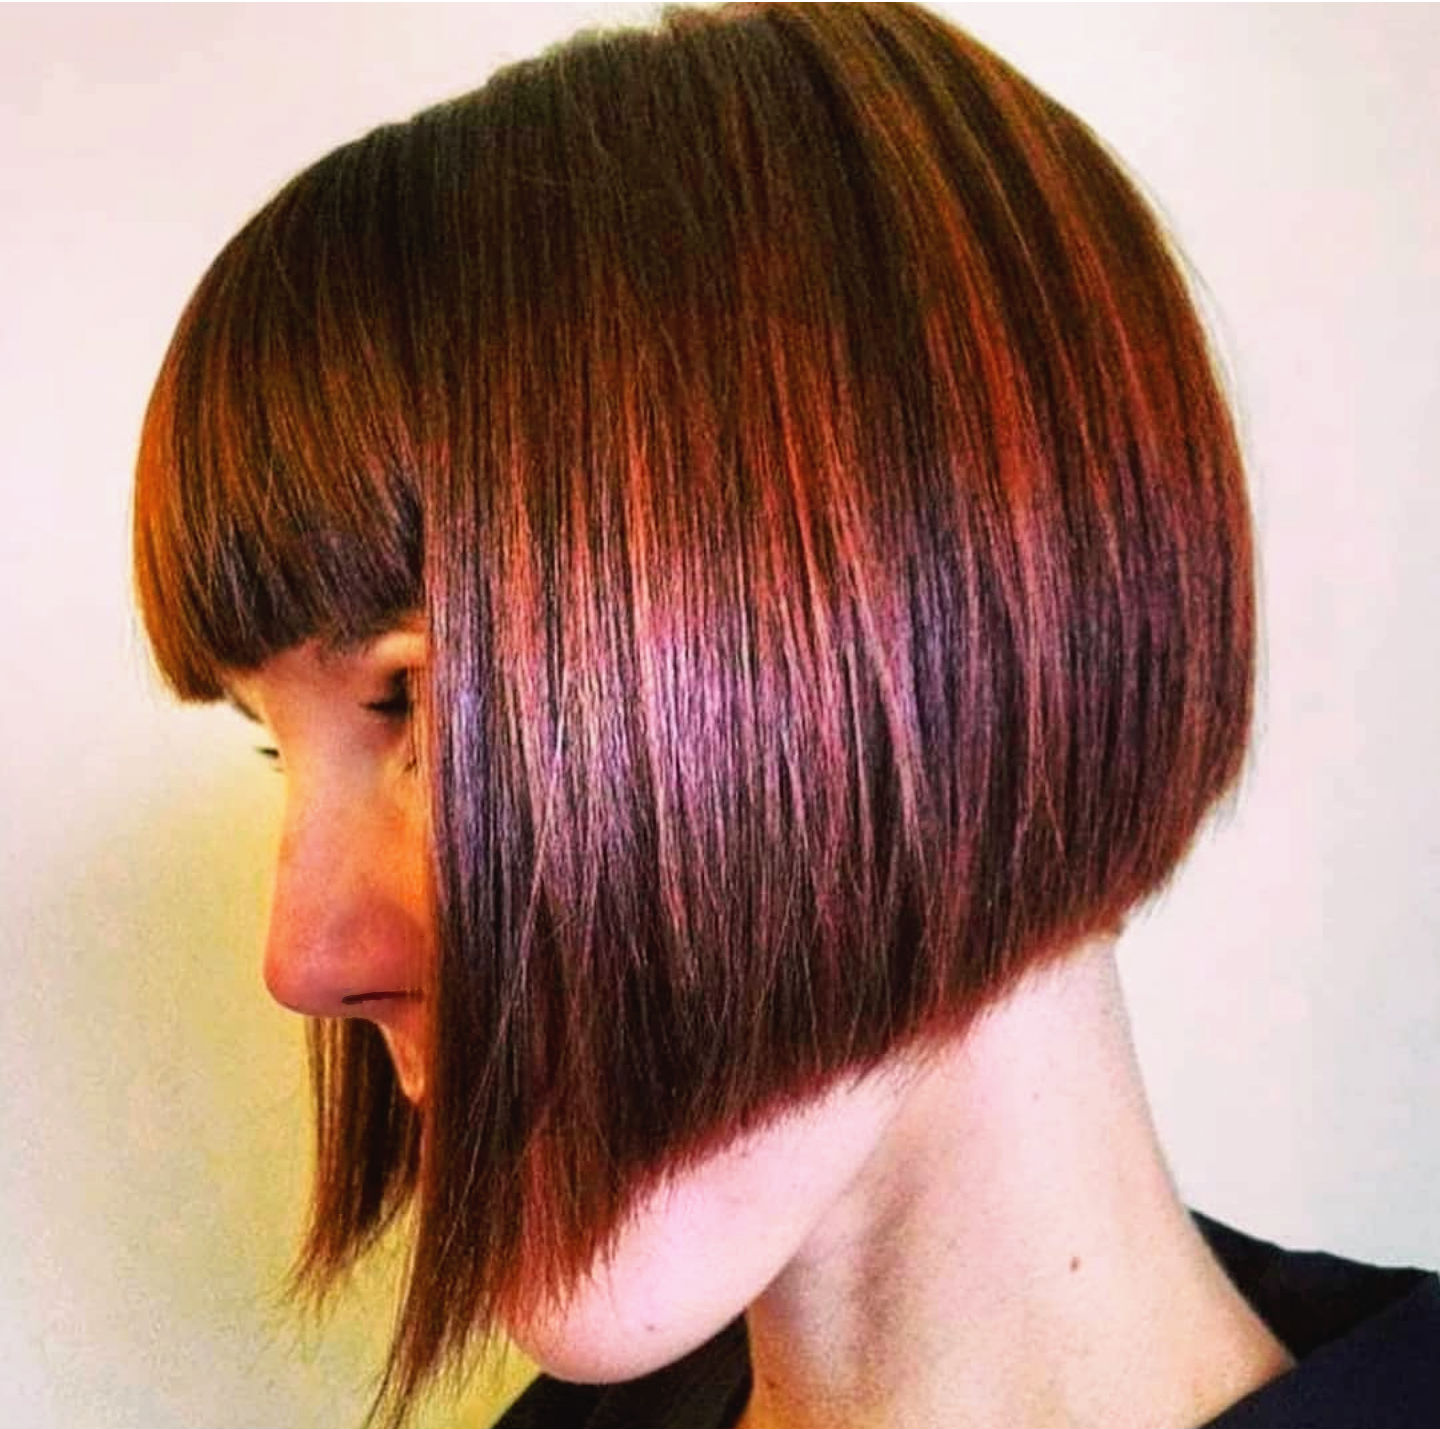 Red Hair bob sharp clean cut